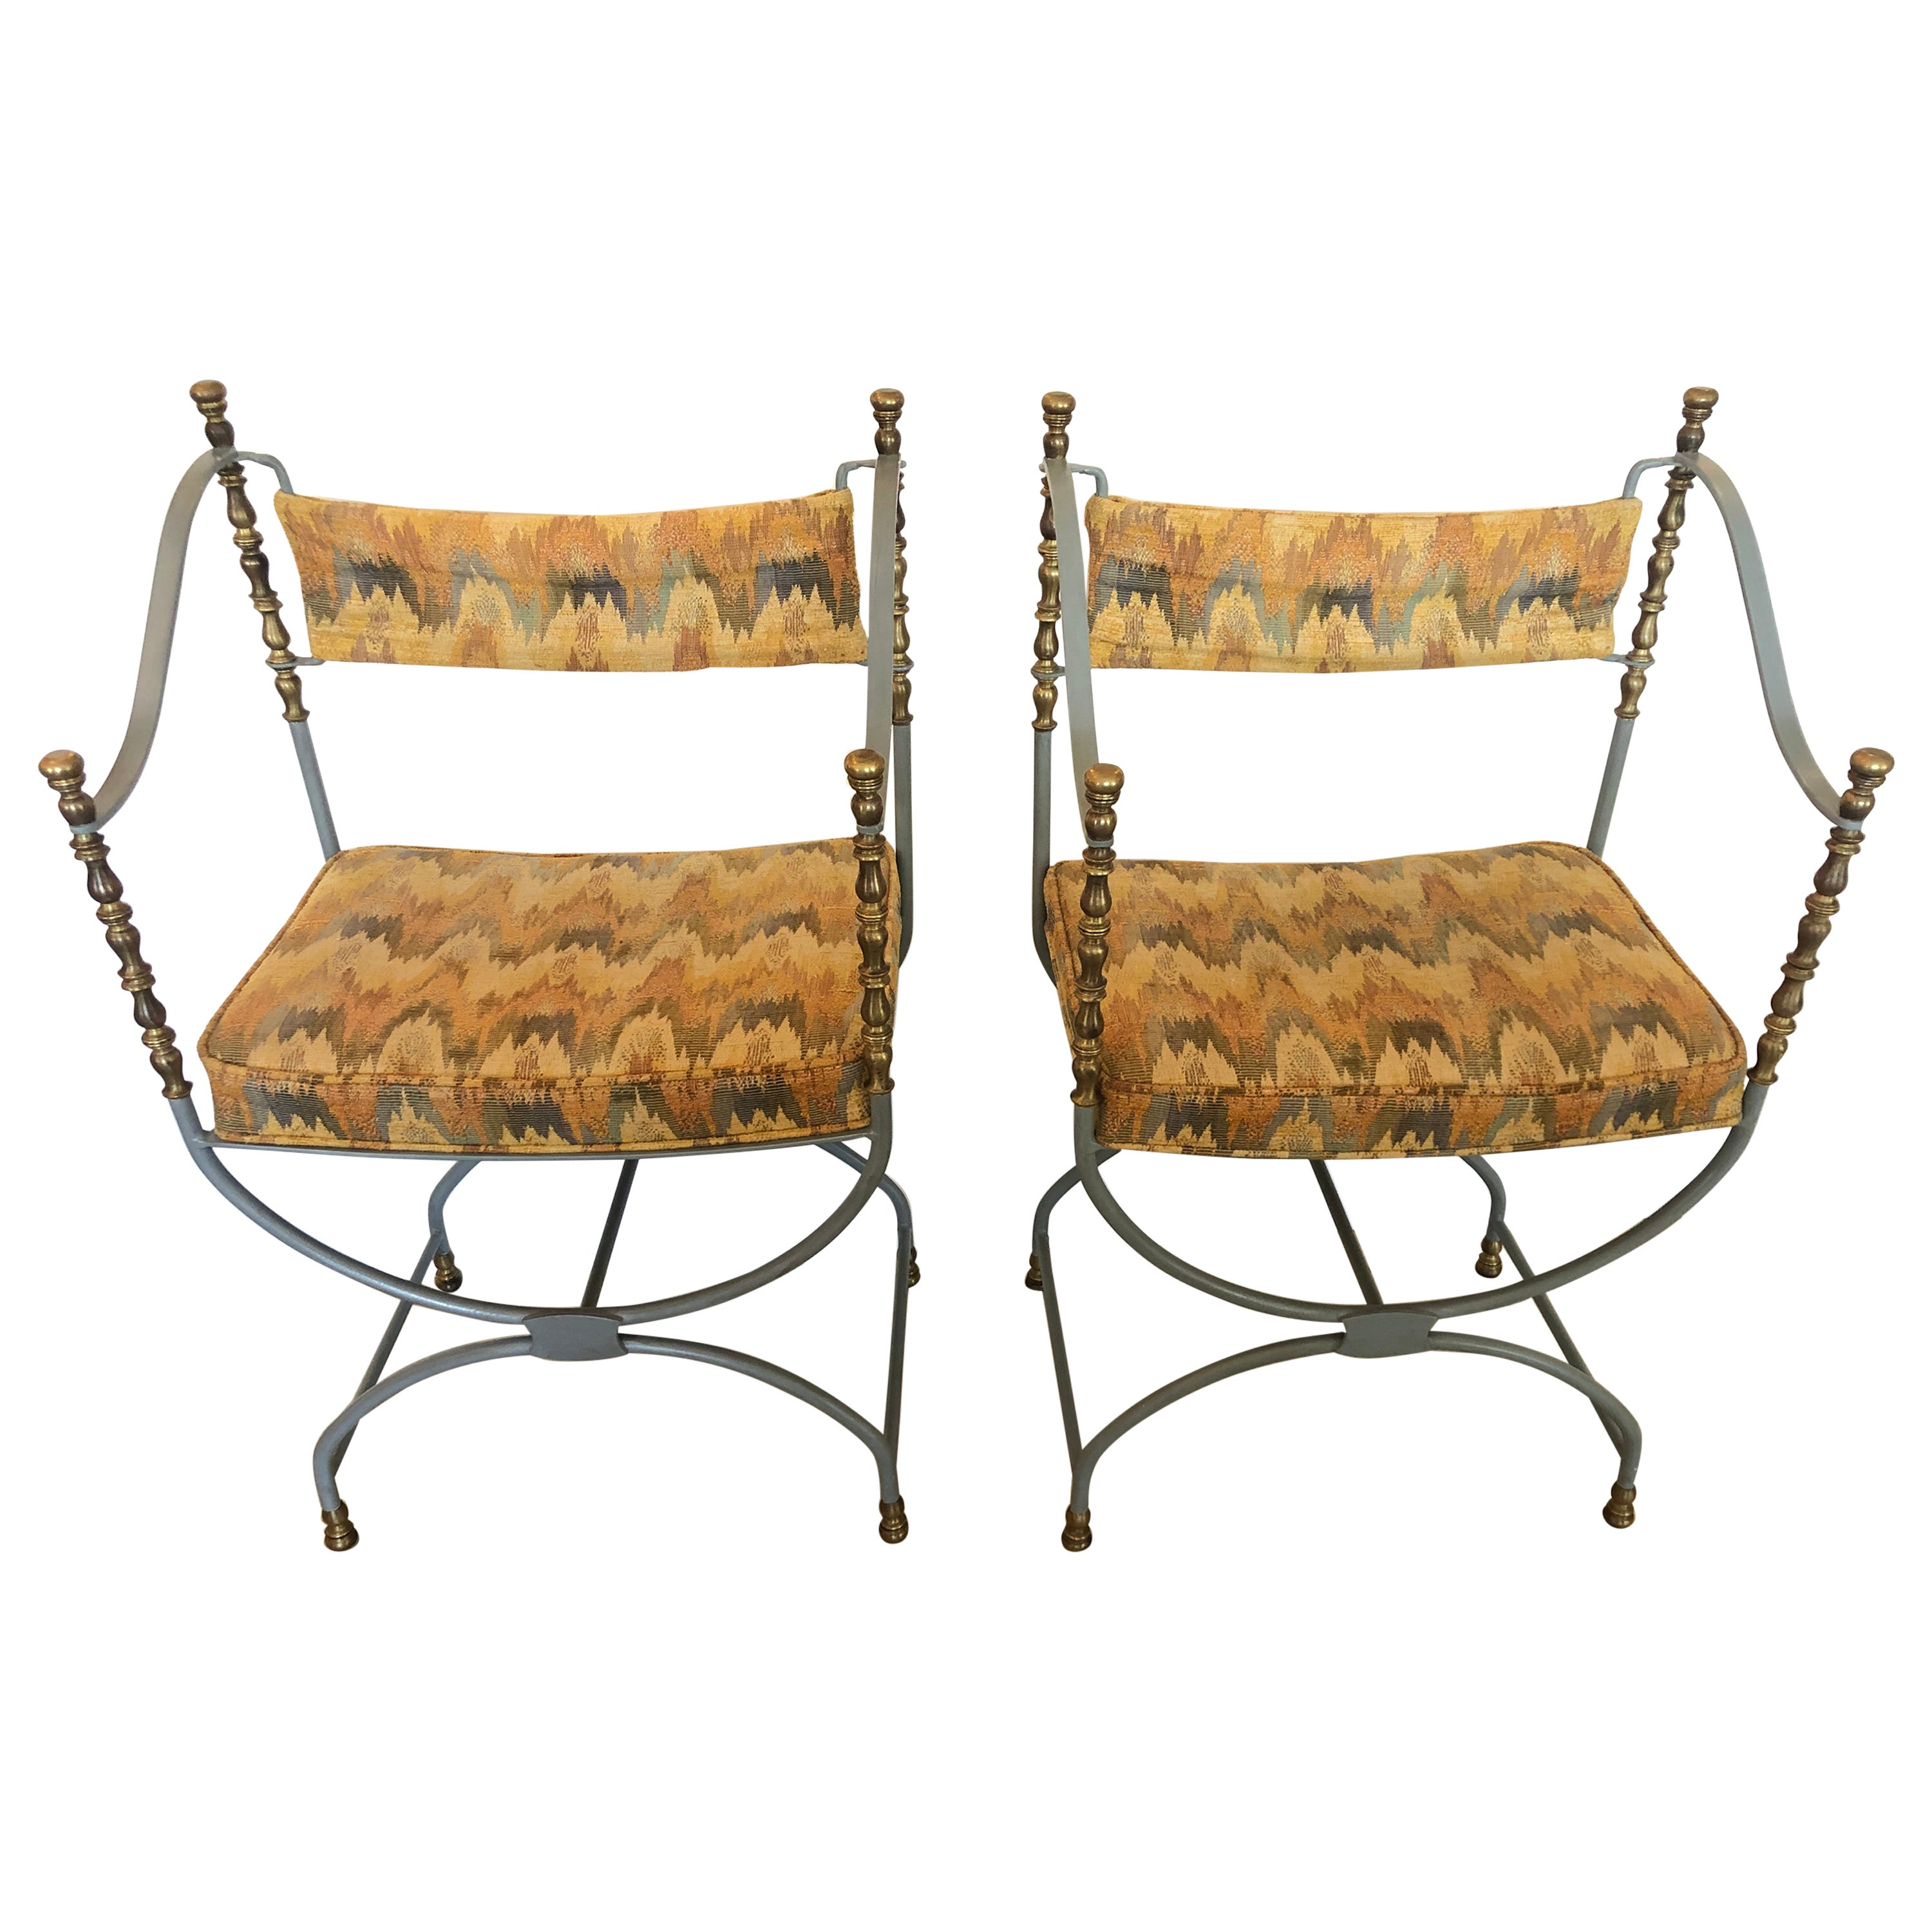 Superb Pair of Savonarola Style Grey Painted Iron and Brass Campaign Chairs